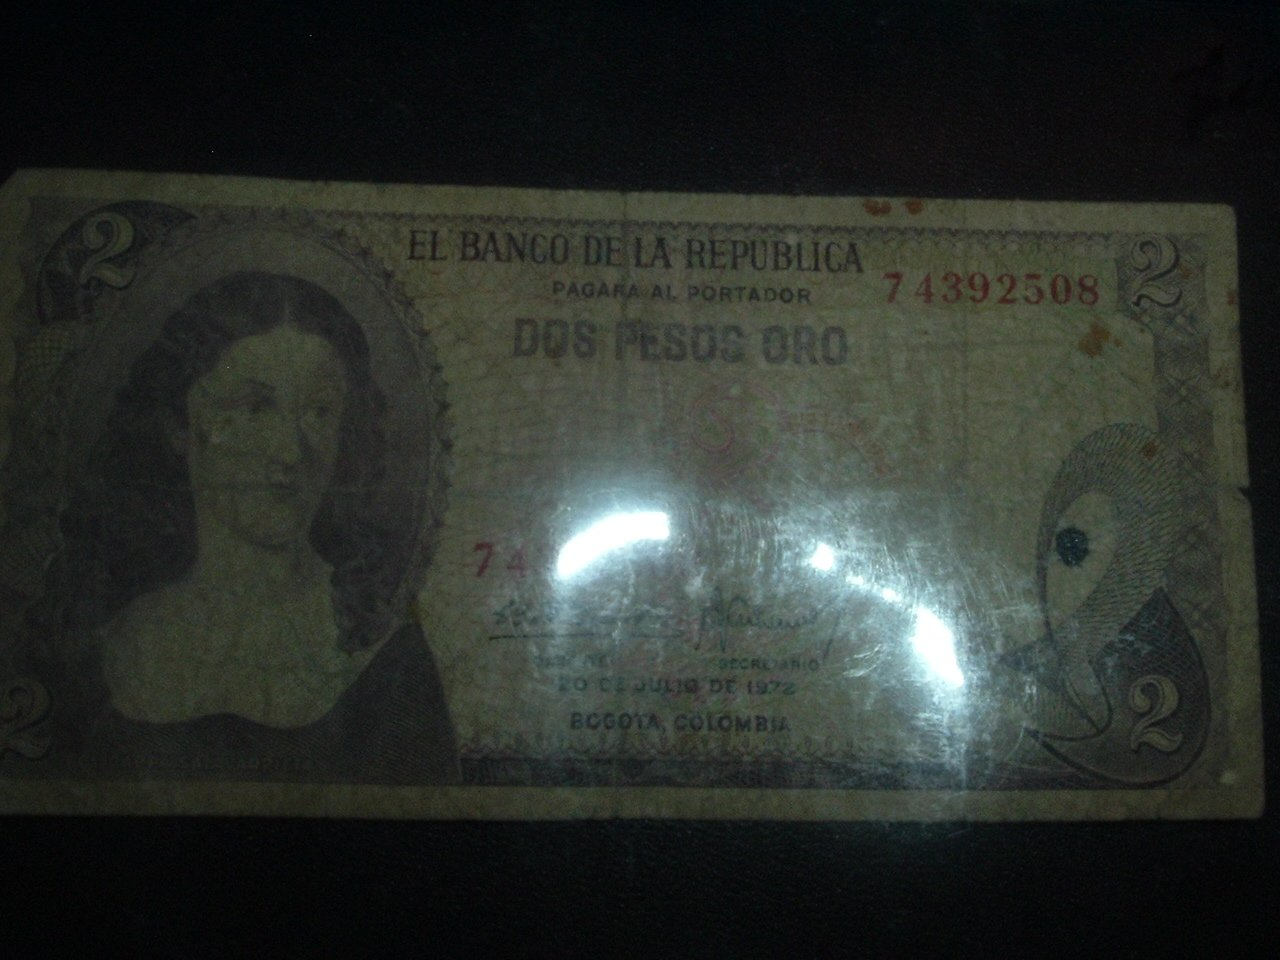 Dos Pesos Oro (GOLD) Circulated Colombian Paper Money